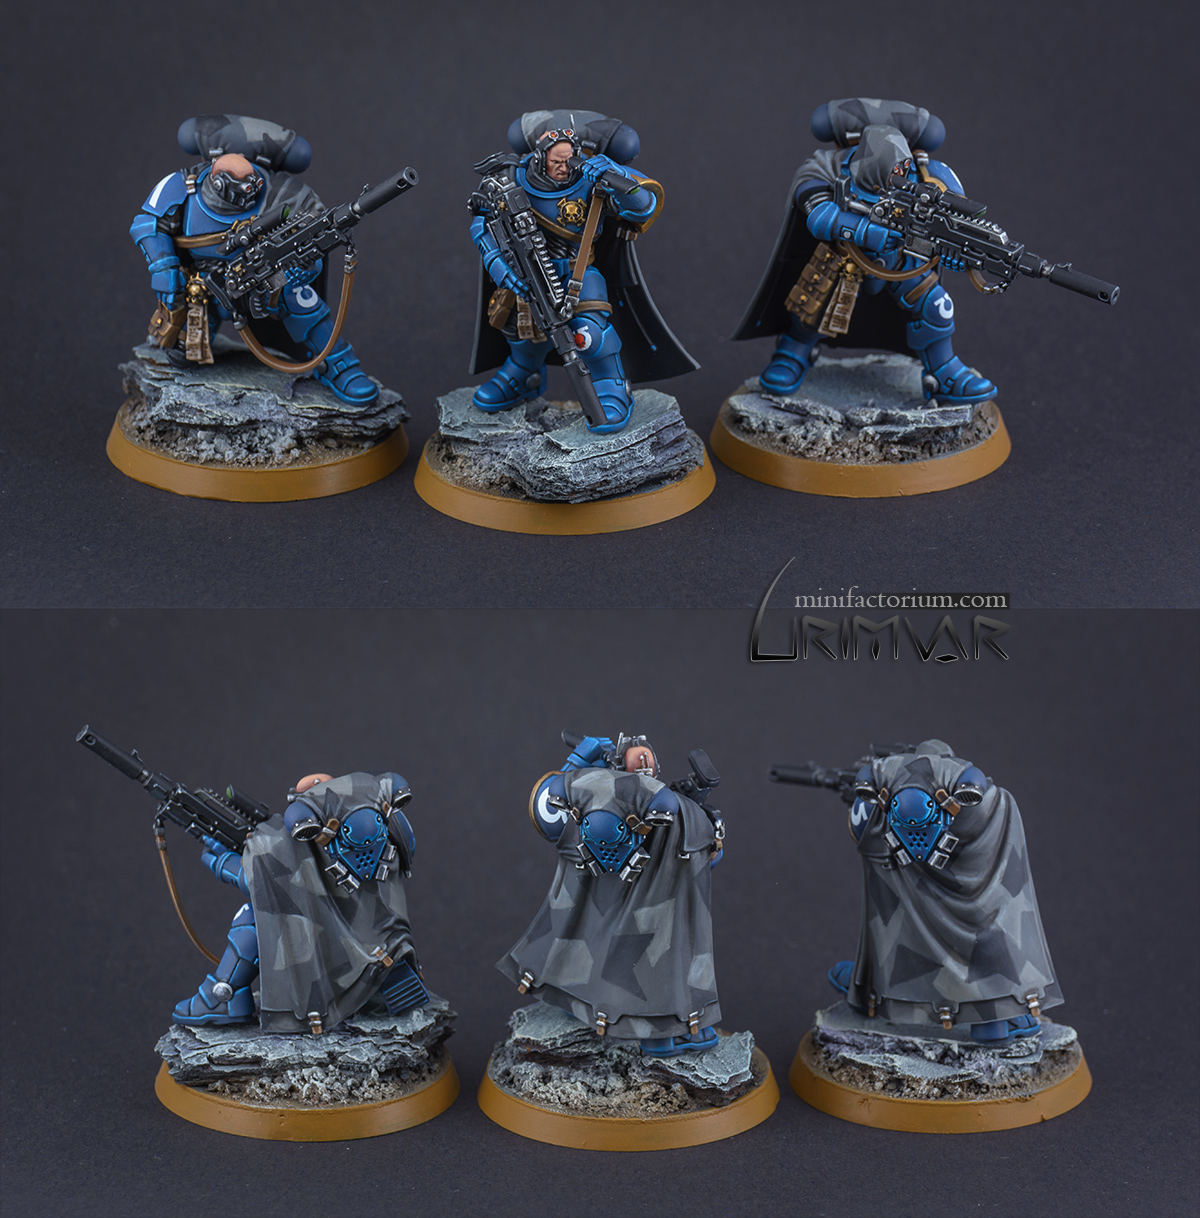 Ultramarine Eliminators